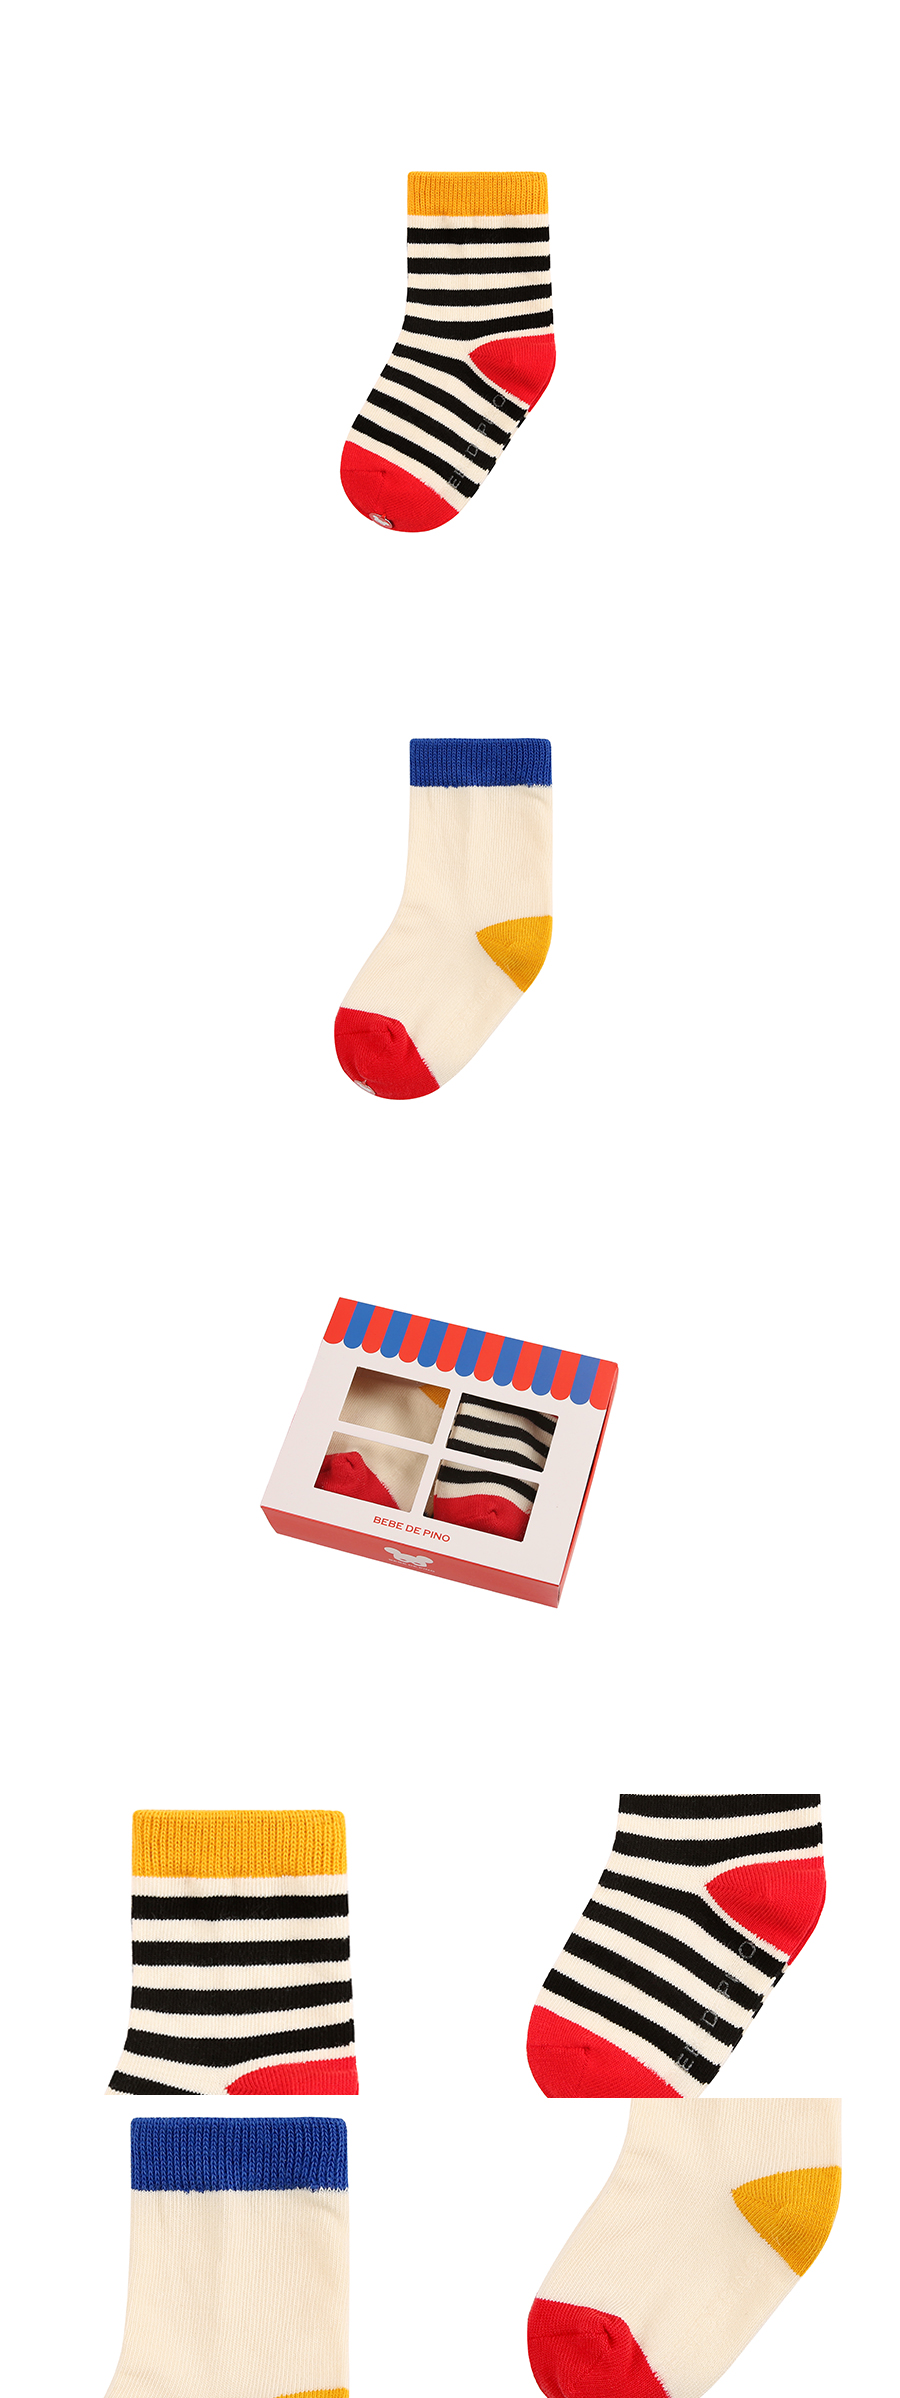 Color block socks 2 piece set 상세 이미지